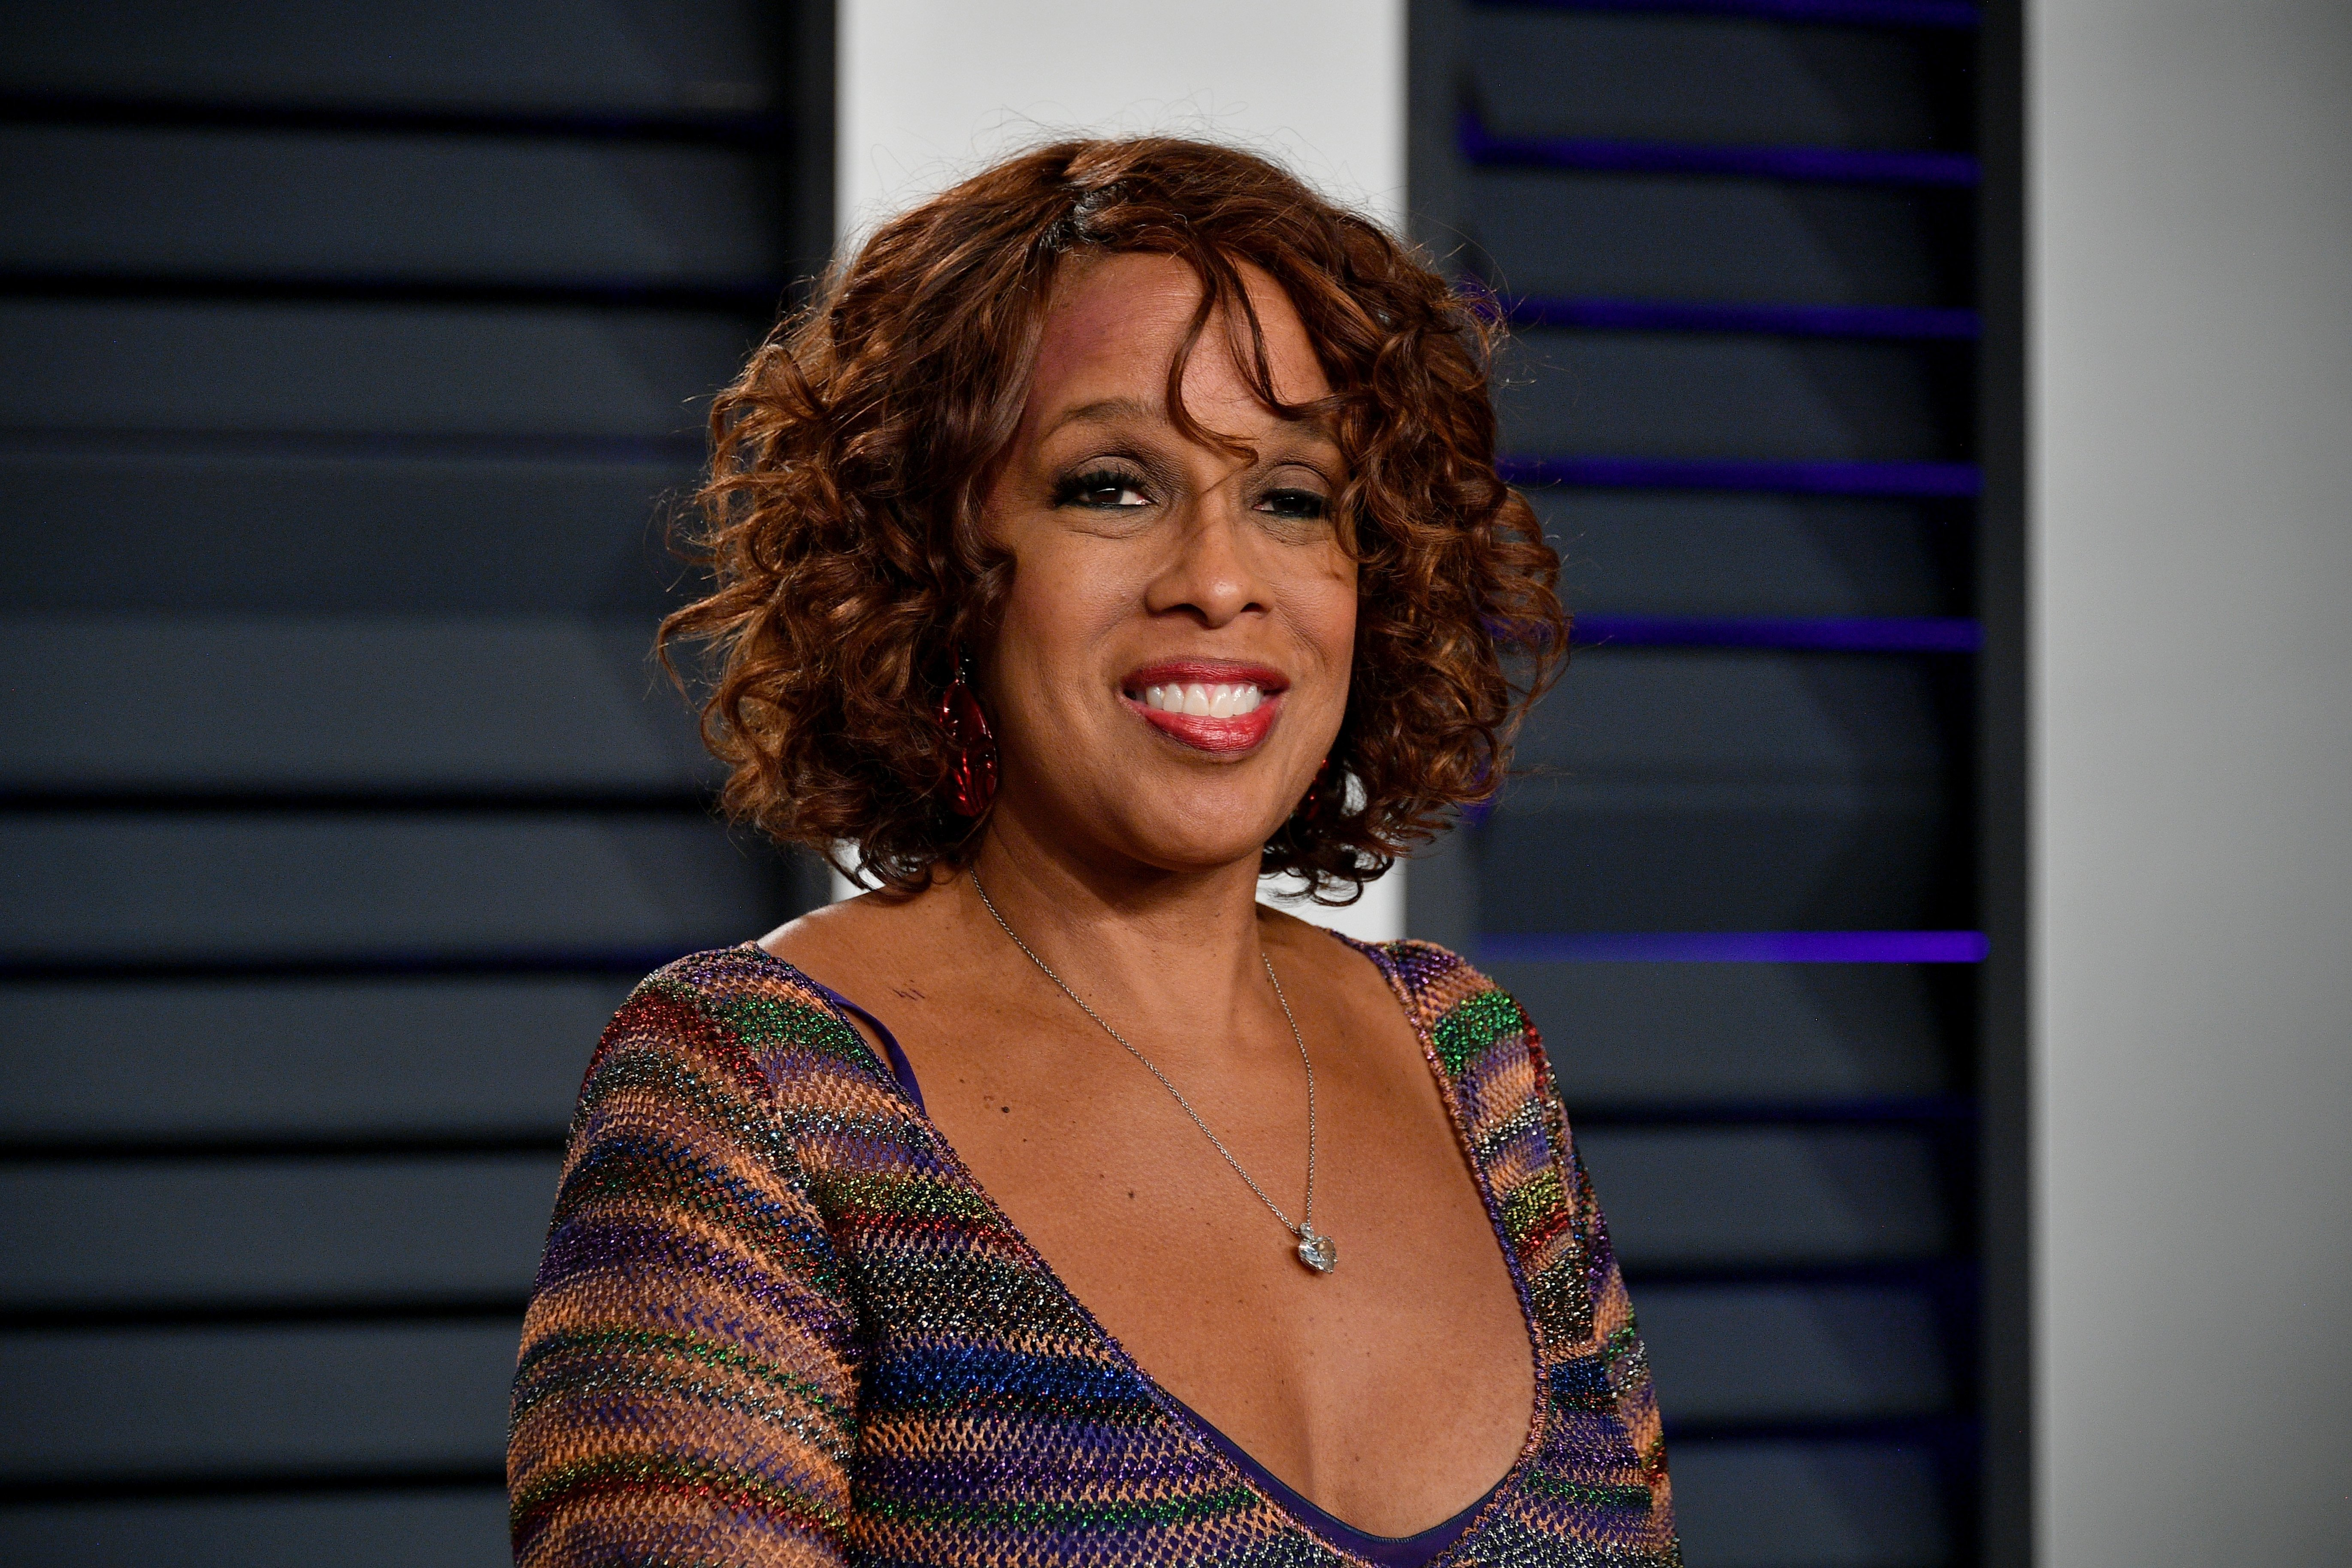 Television personality Gayle King at the 2019 Vanity Fair Oscar Party. | Photo: Getty Images